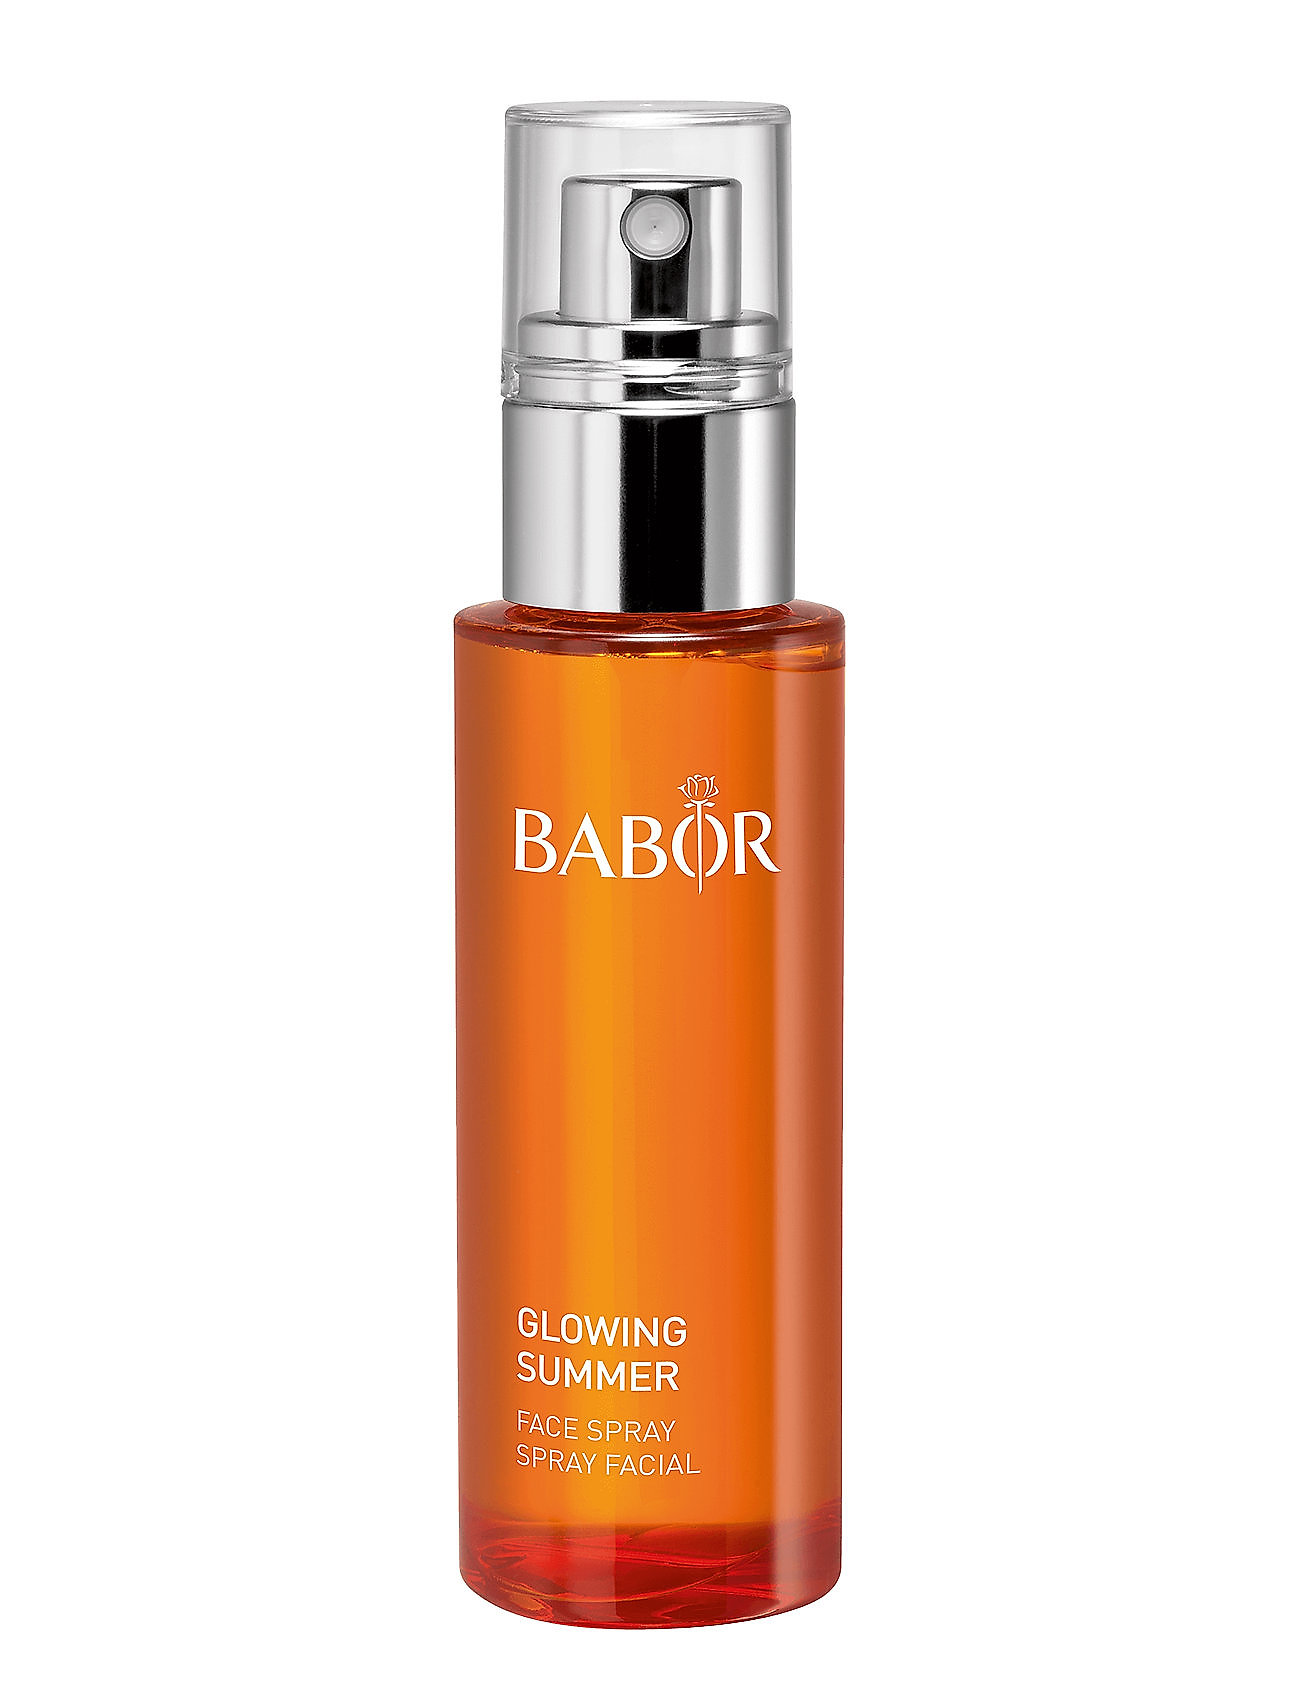 Image of Glowing Summer Beauty WOMEN Skin Care Face Face Mist Nude Babor (3217761145)